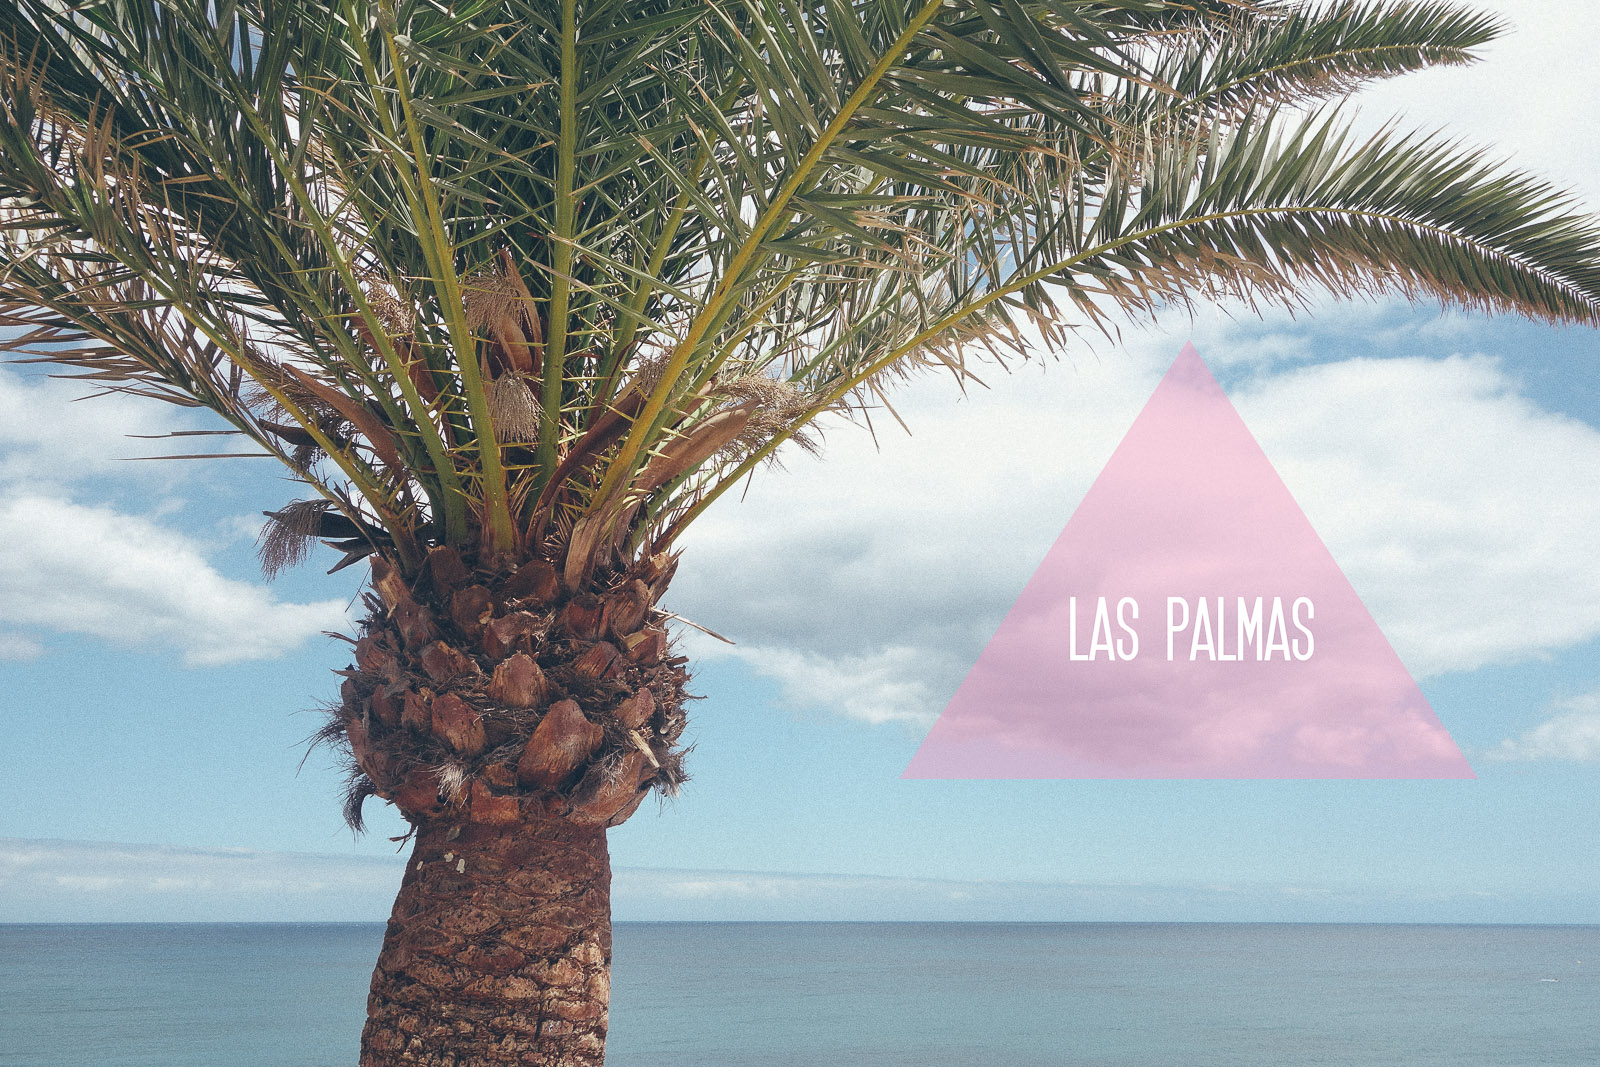 sunshine, palmtrees and close outs.